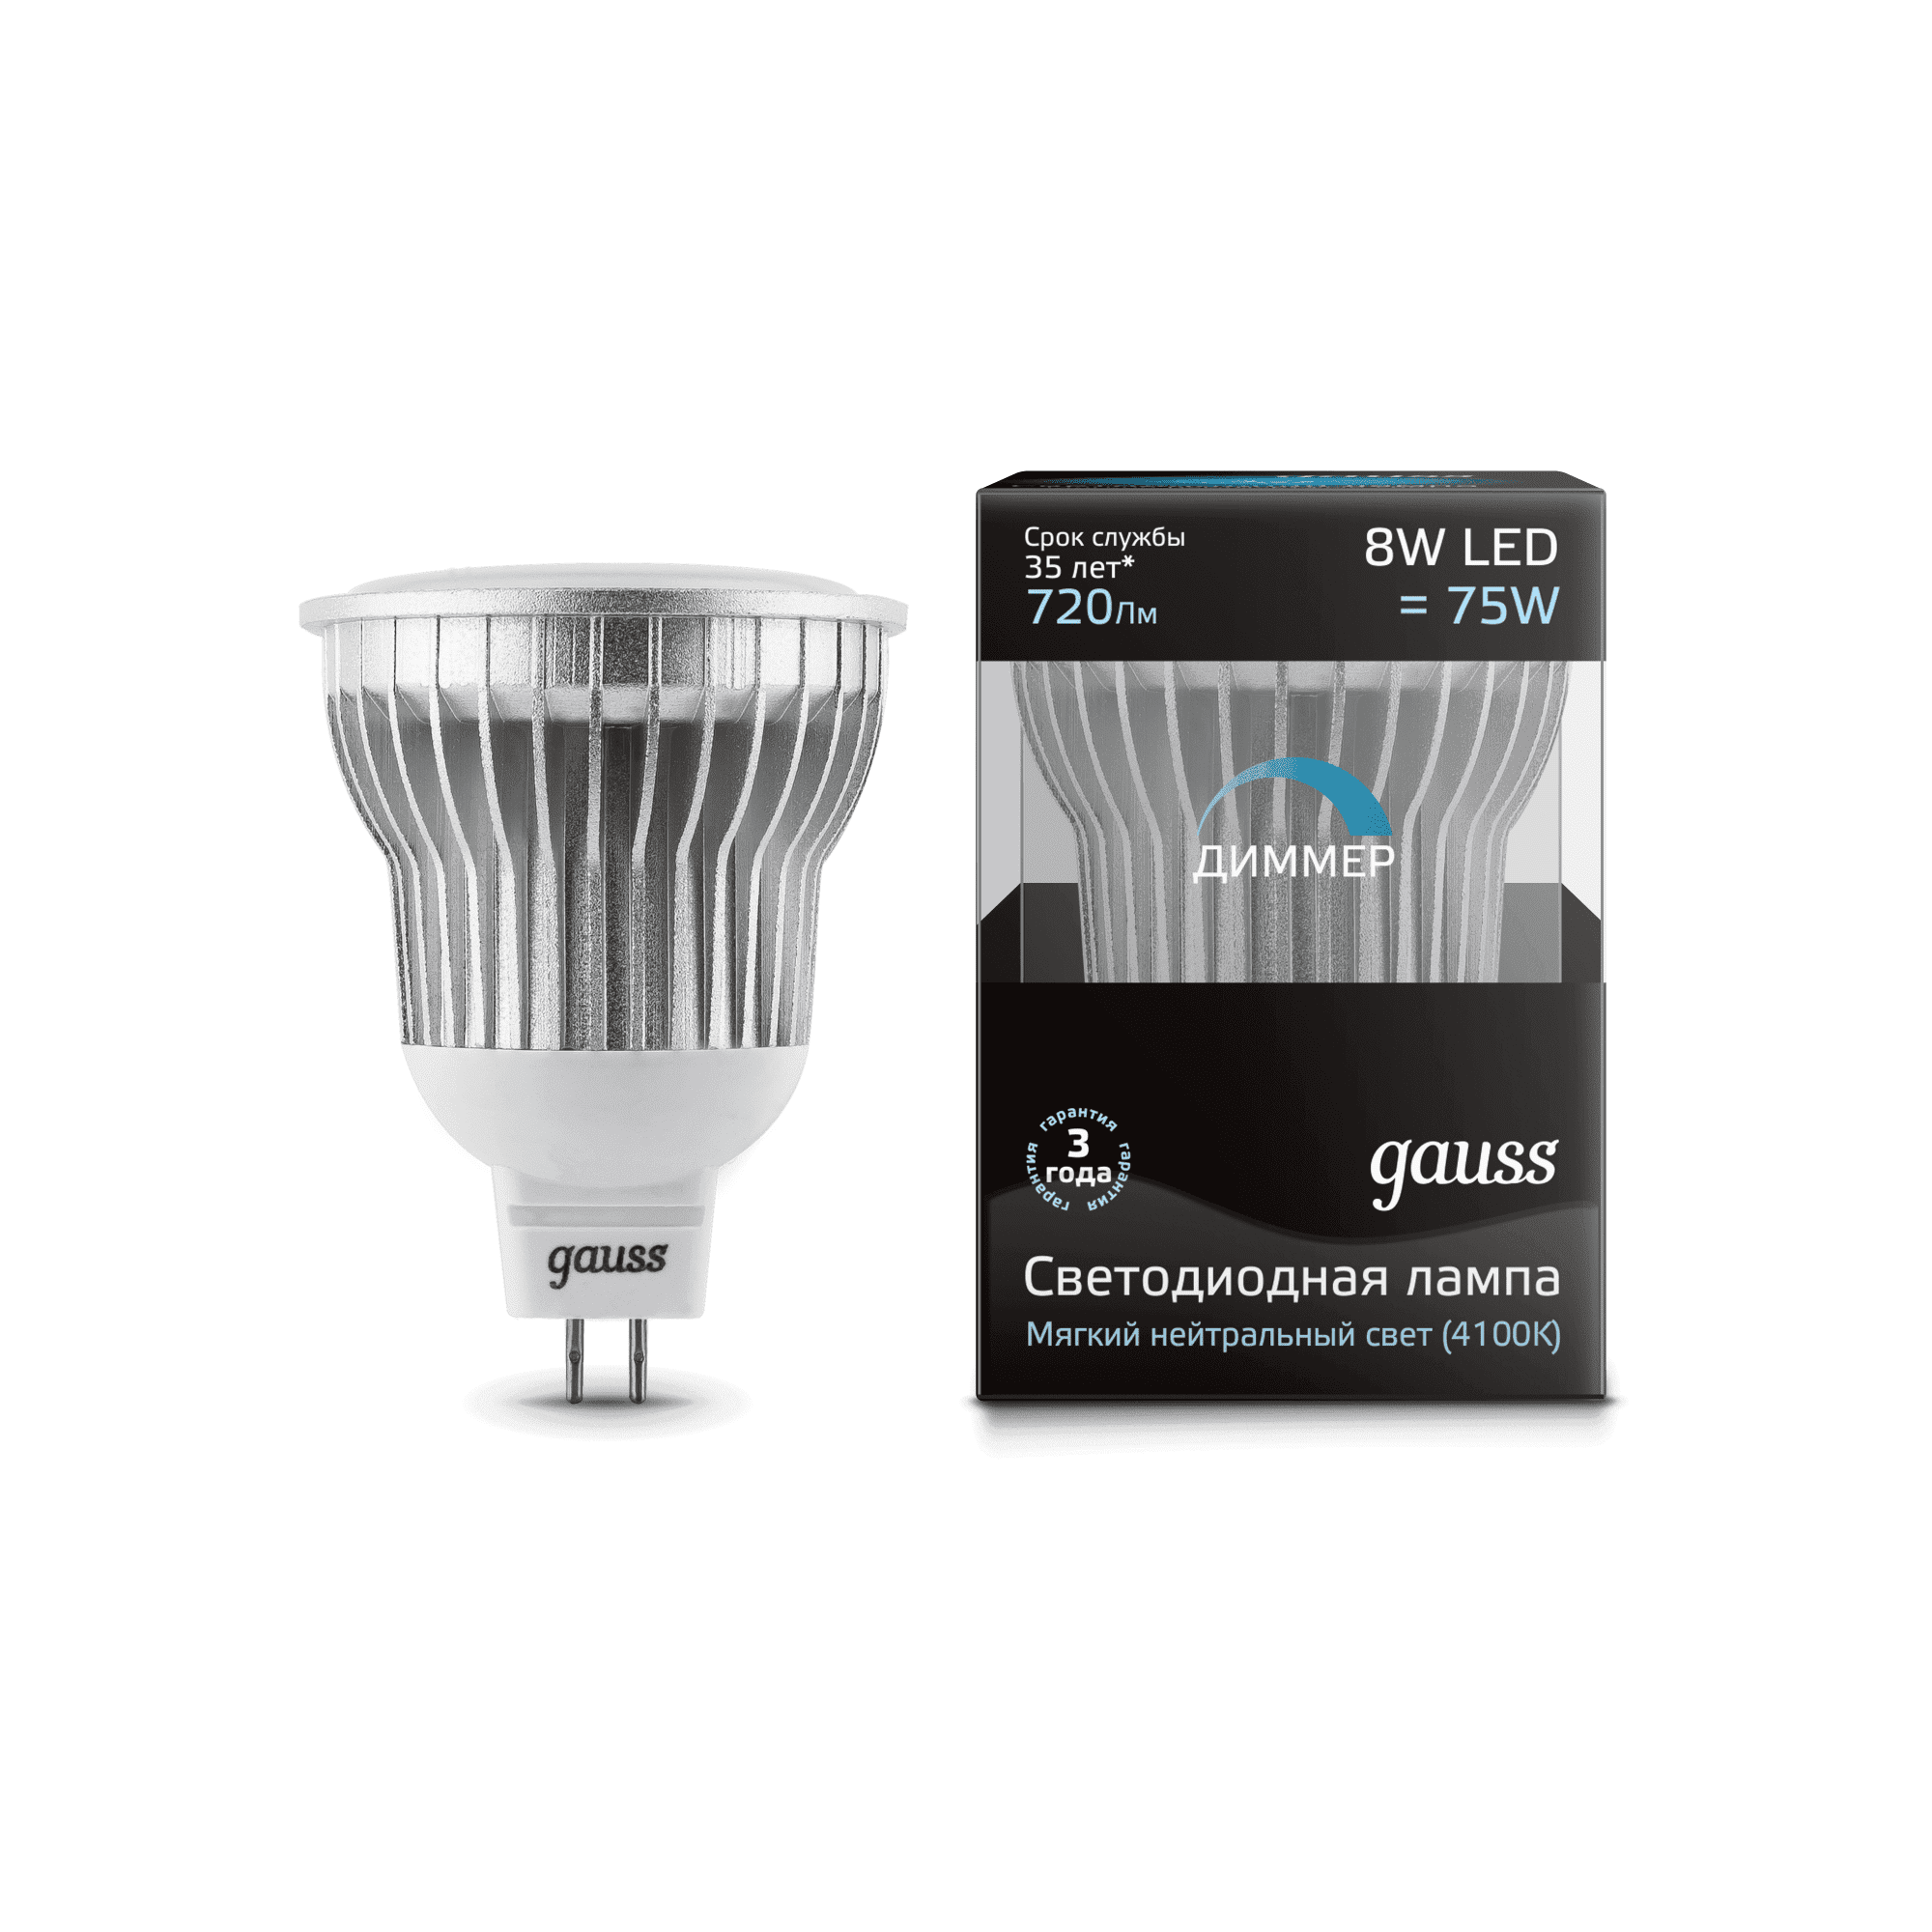 Gauss LED MR16 GU5.3-dim 8W SMD AC220-240V 4100K диммируемая арт. EB101105208-D